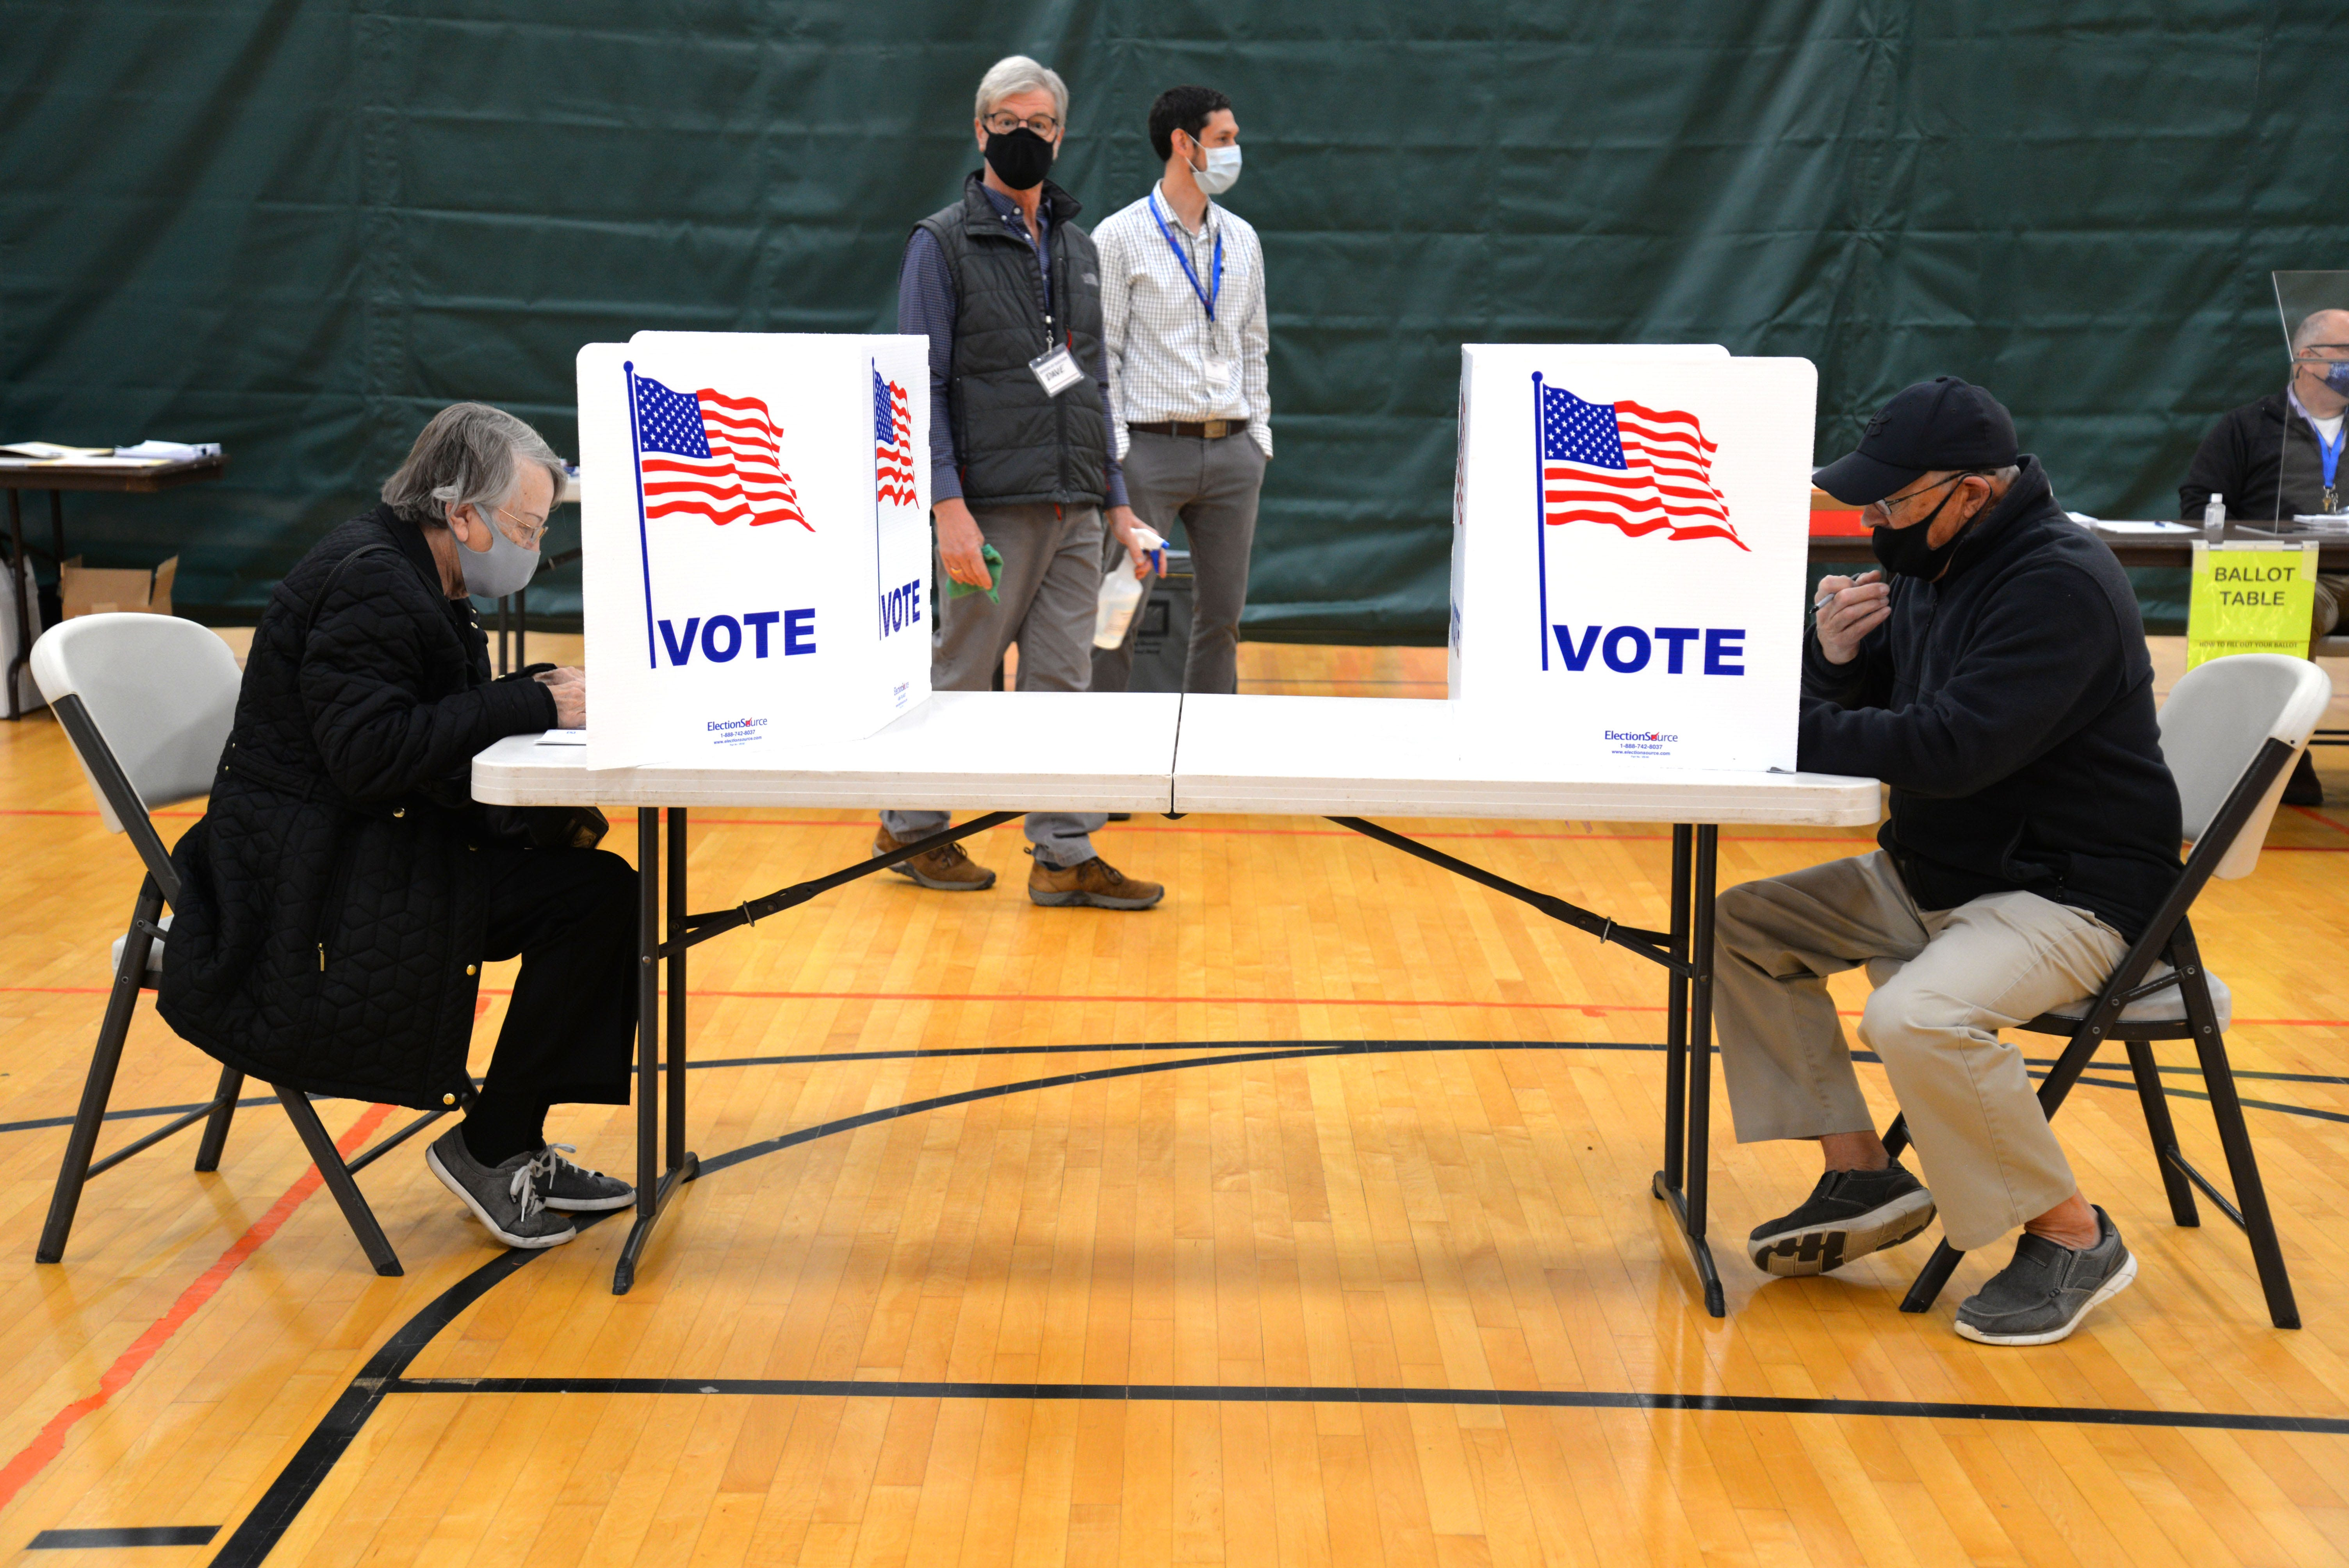 Voters in Ward 3 vote on Election Day on Nov. 3, 2020 at the Gypsy Hill Park Gym in Staunton.Dsc 9669